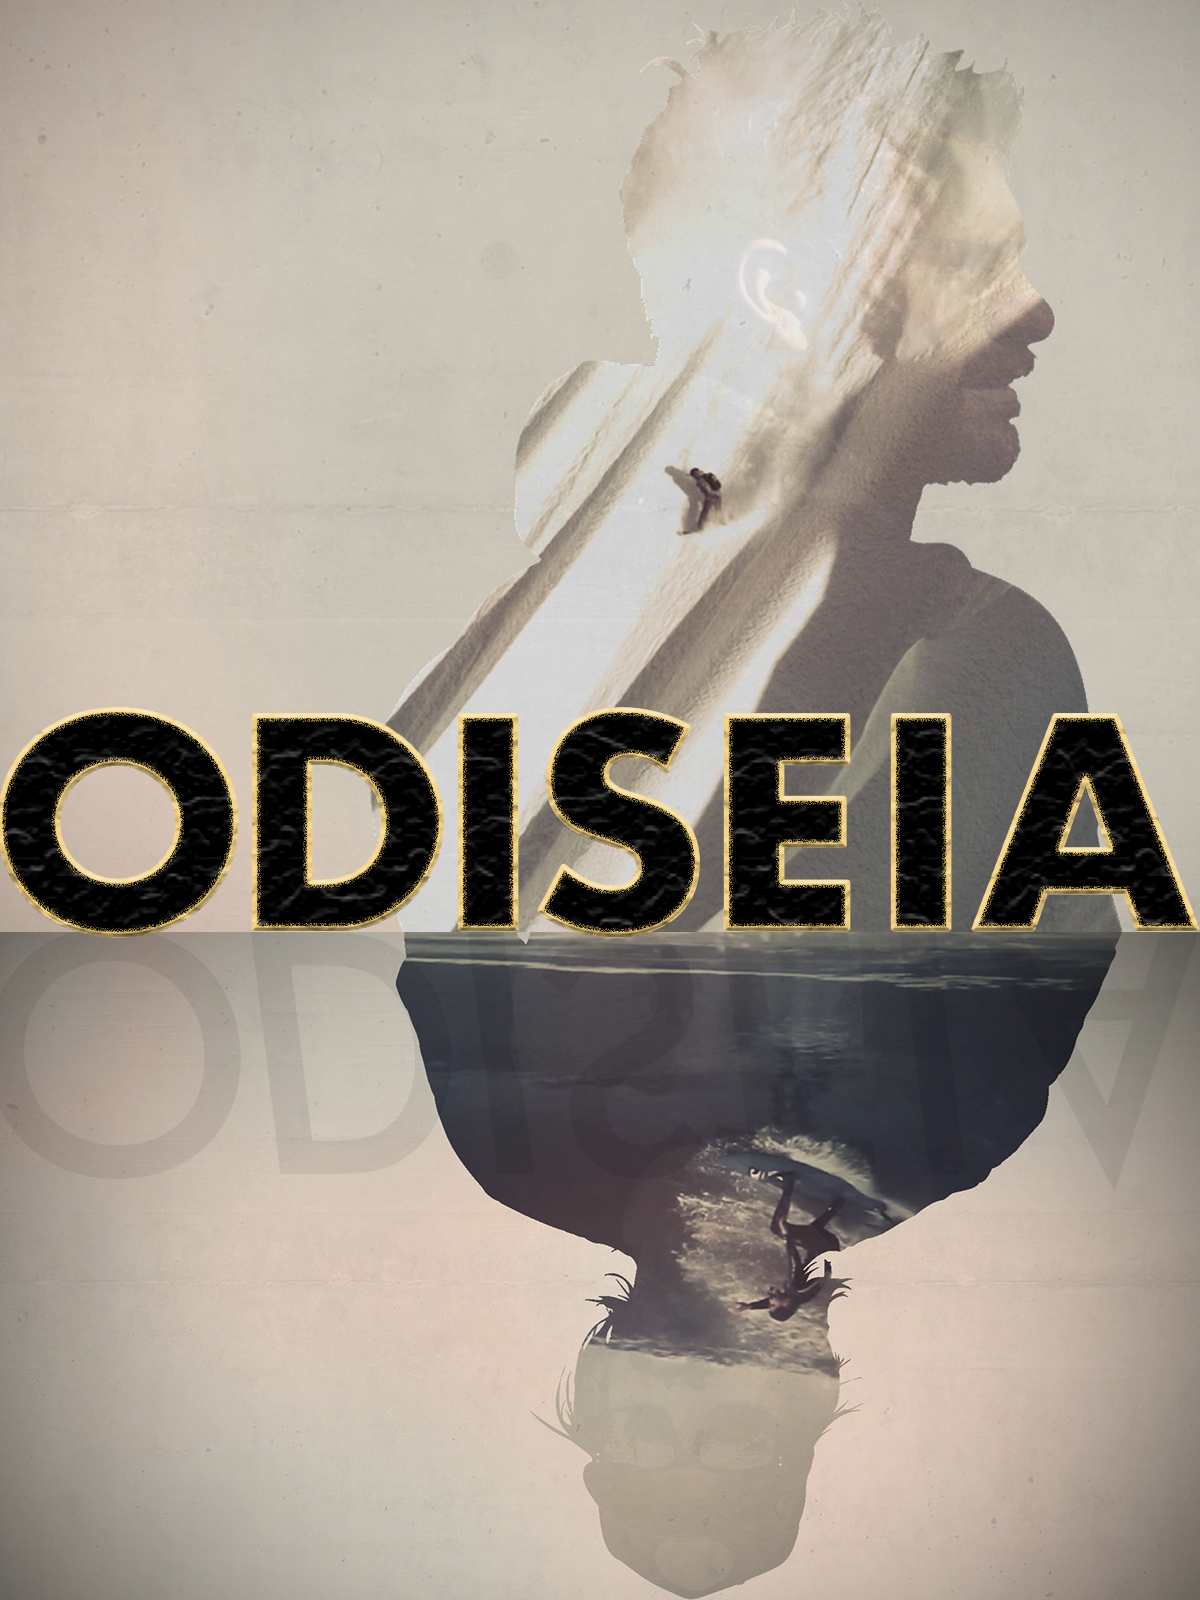 Odisea poster.